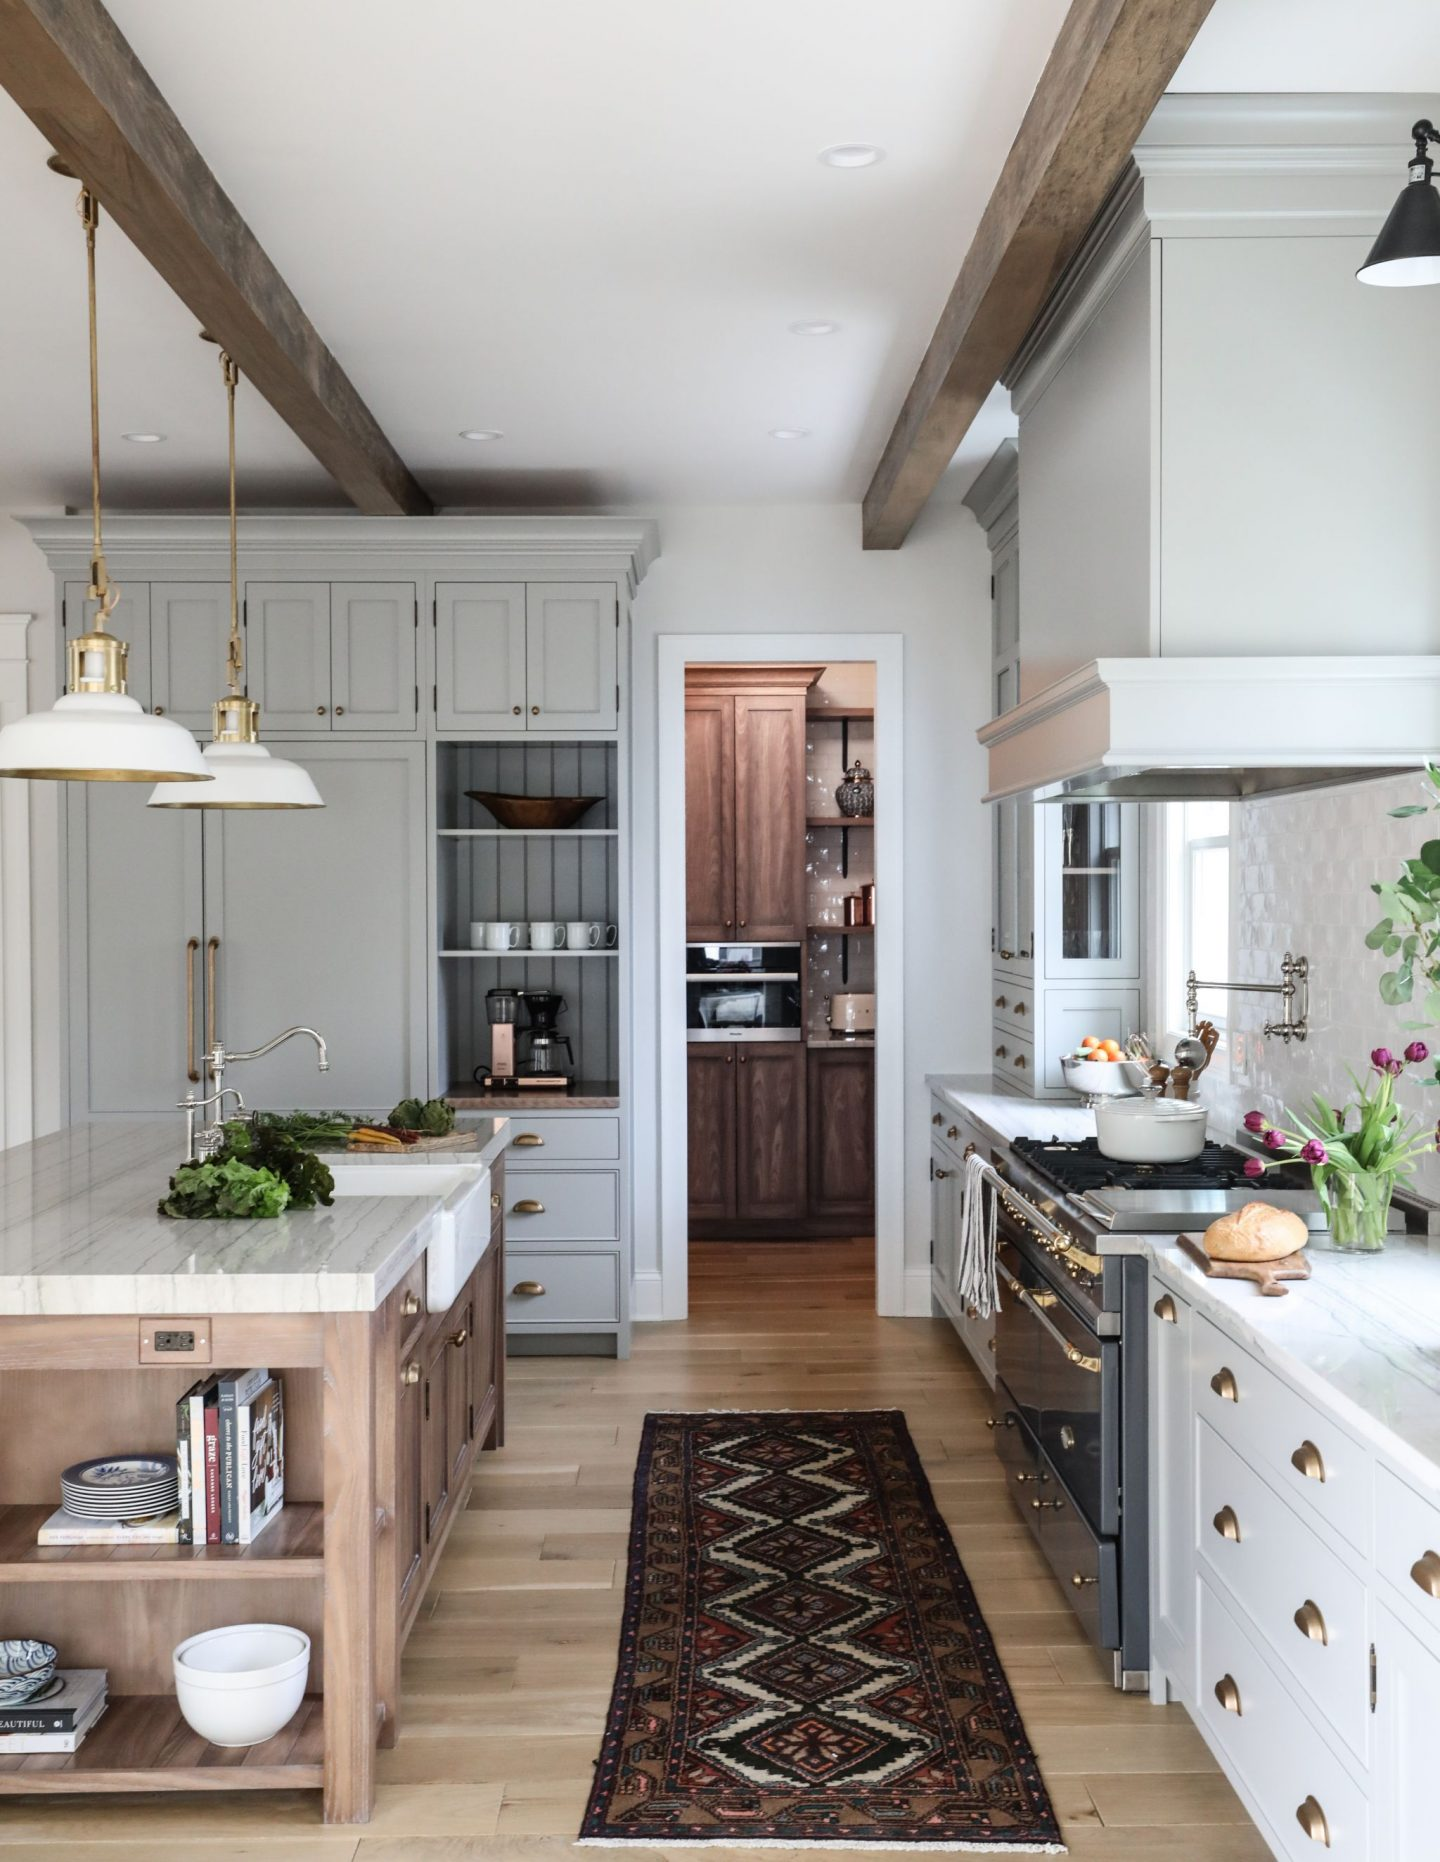 Lamp Room Gray Farrow & Ball painted cabinets in a timeless and classic kitchen by Park and Oak. Click through for Perfect Light Gray Paint Colors You'll Love as Well as Interior Design Inspiration Photos.